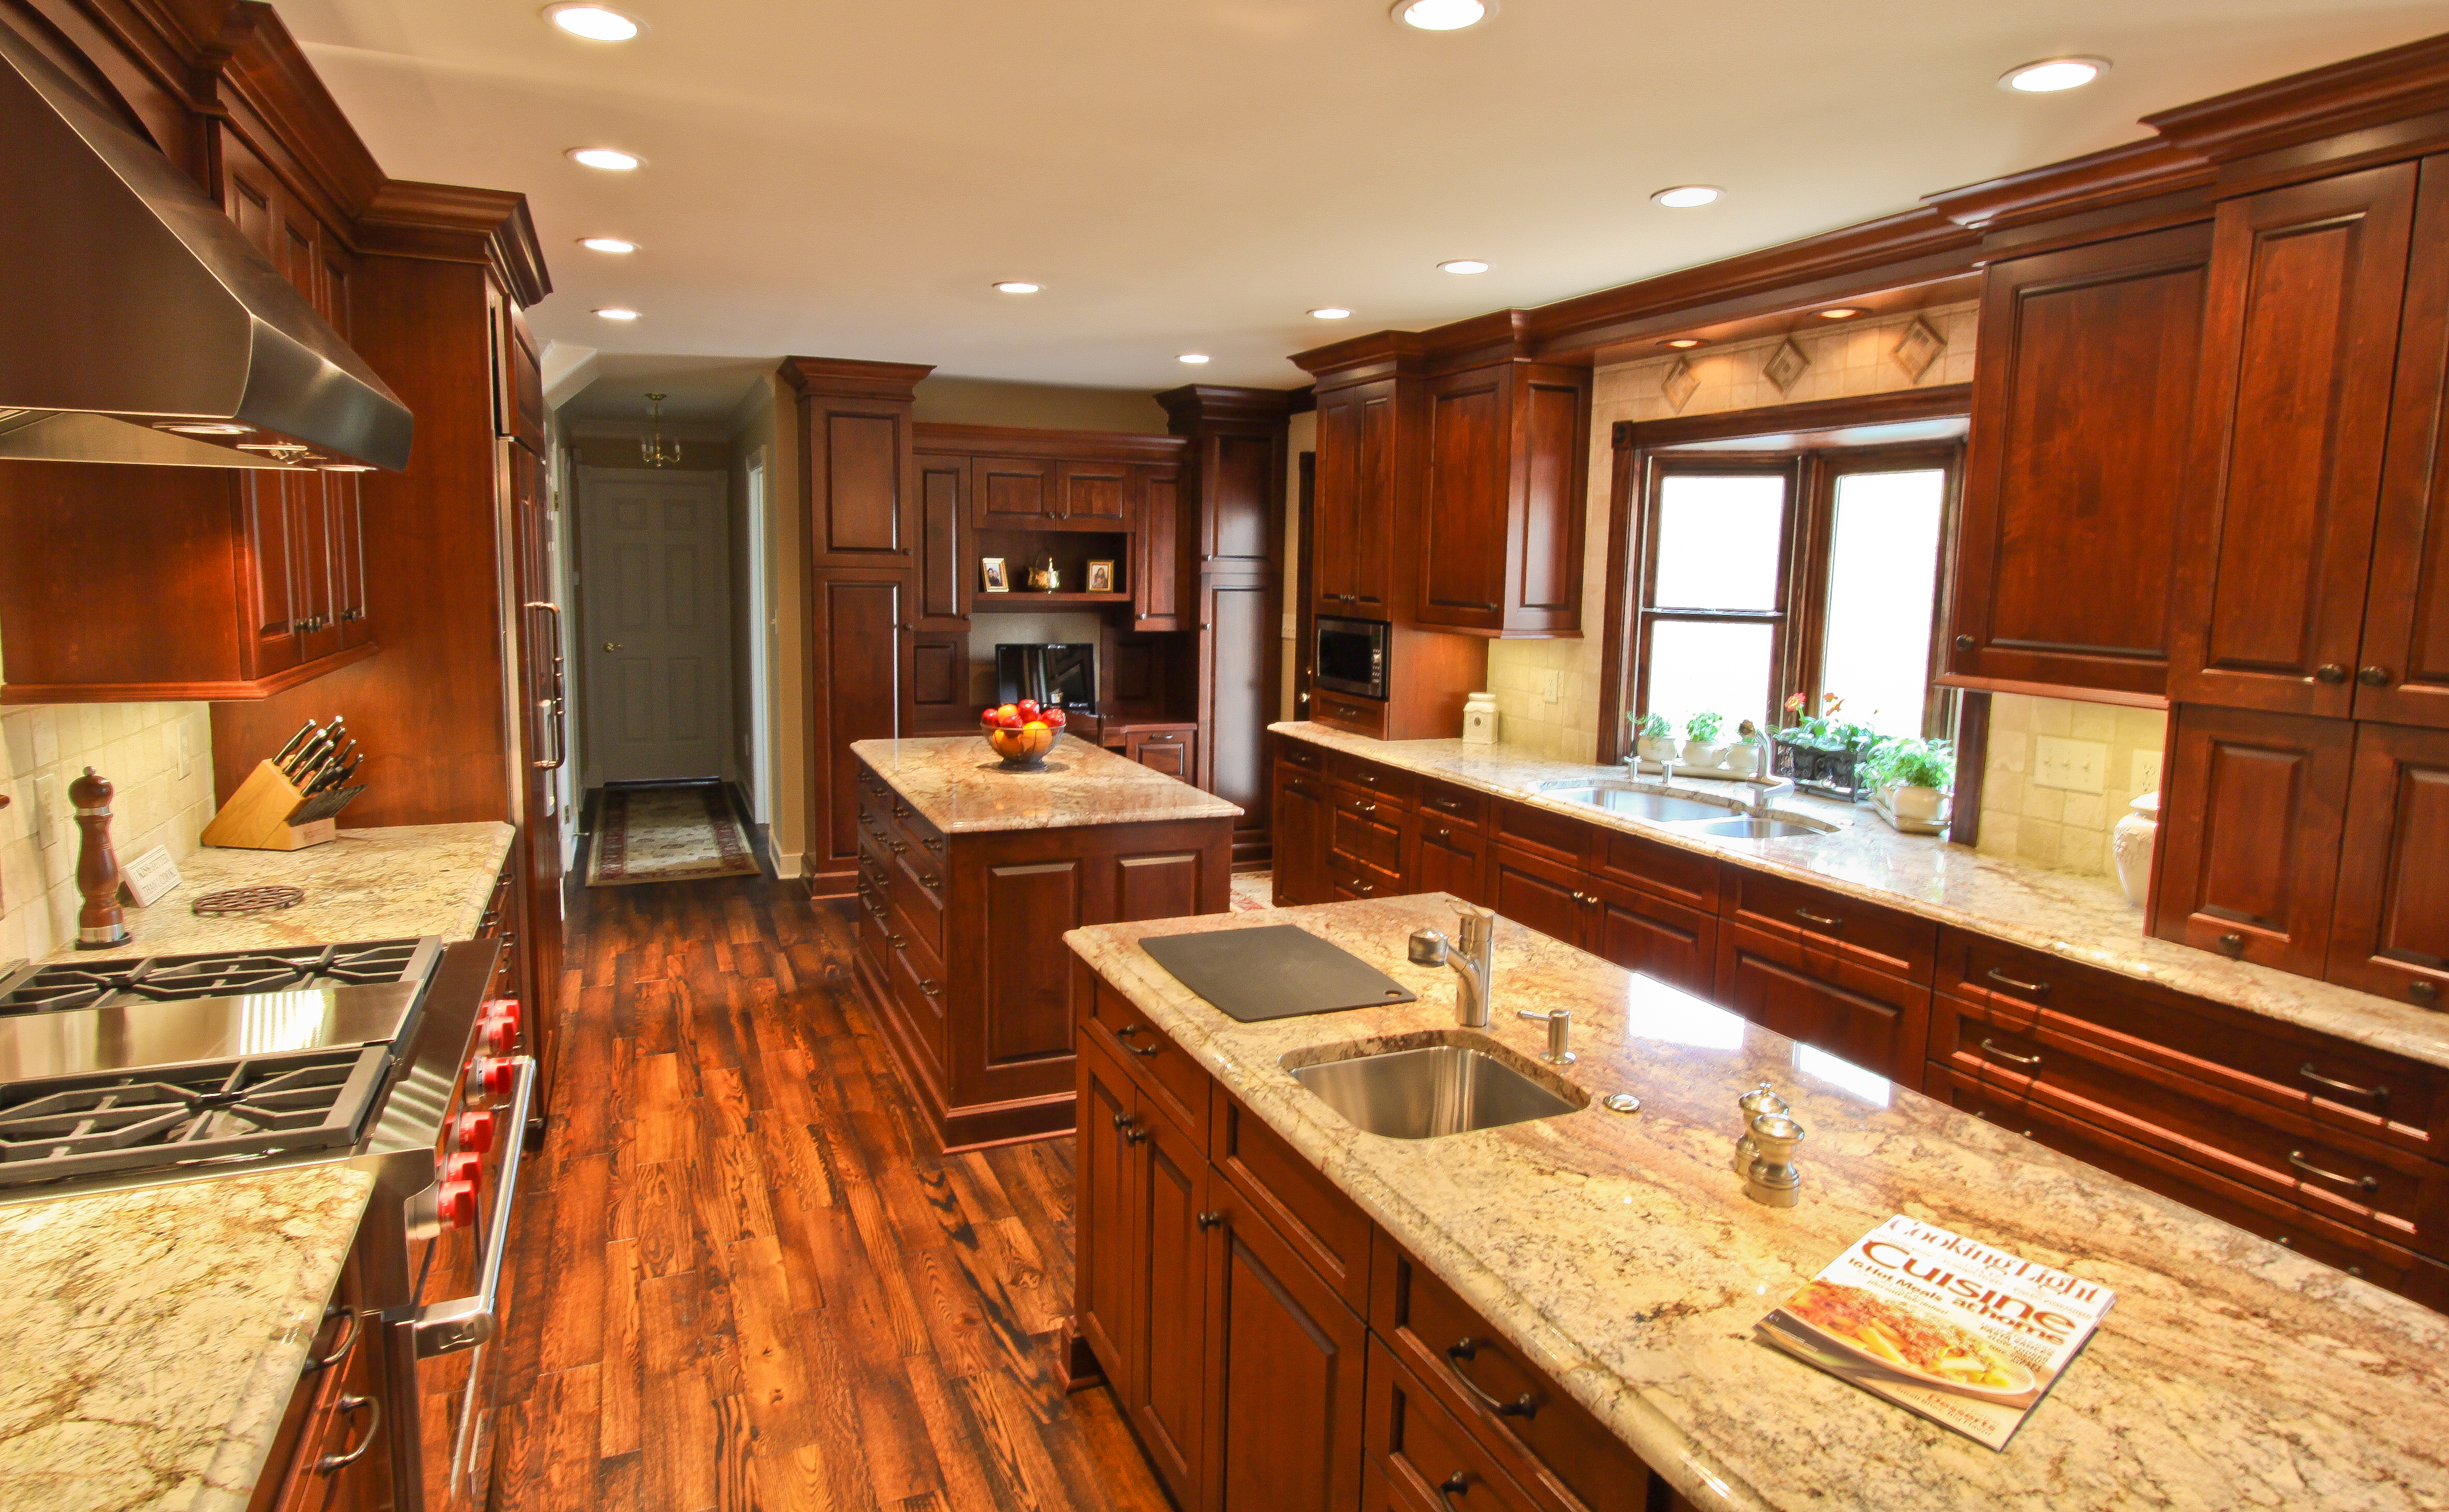 Classic Kitchens-73 - Classic Kitchens of Virginia